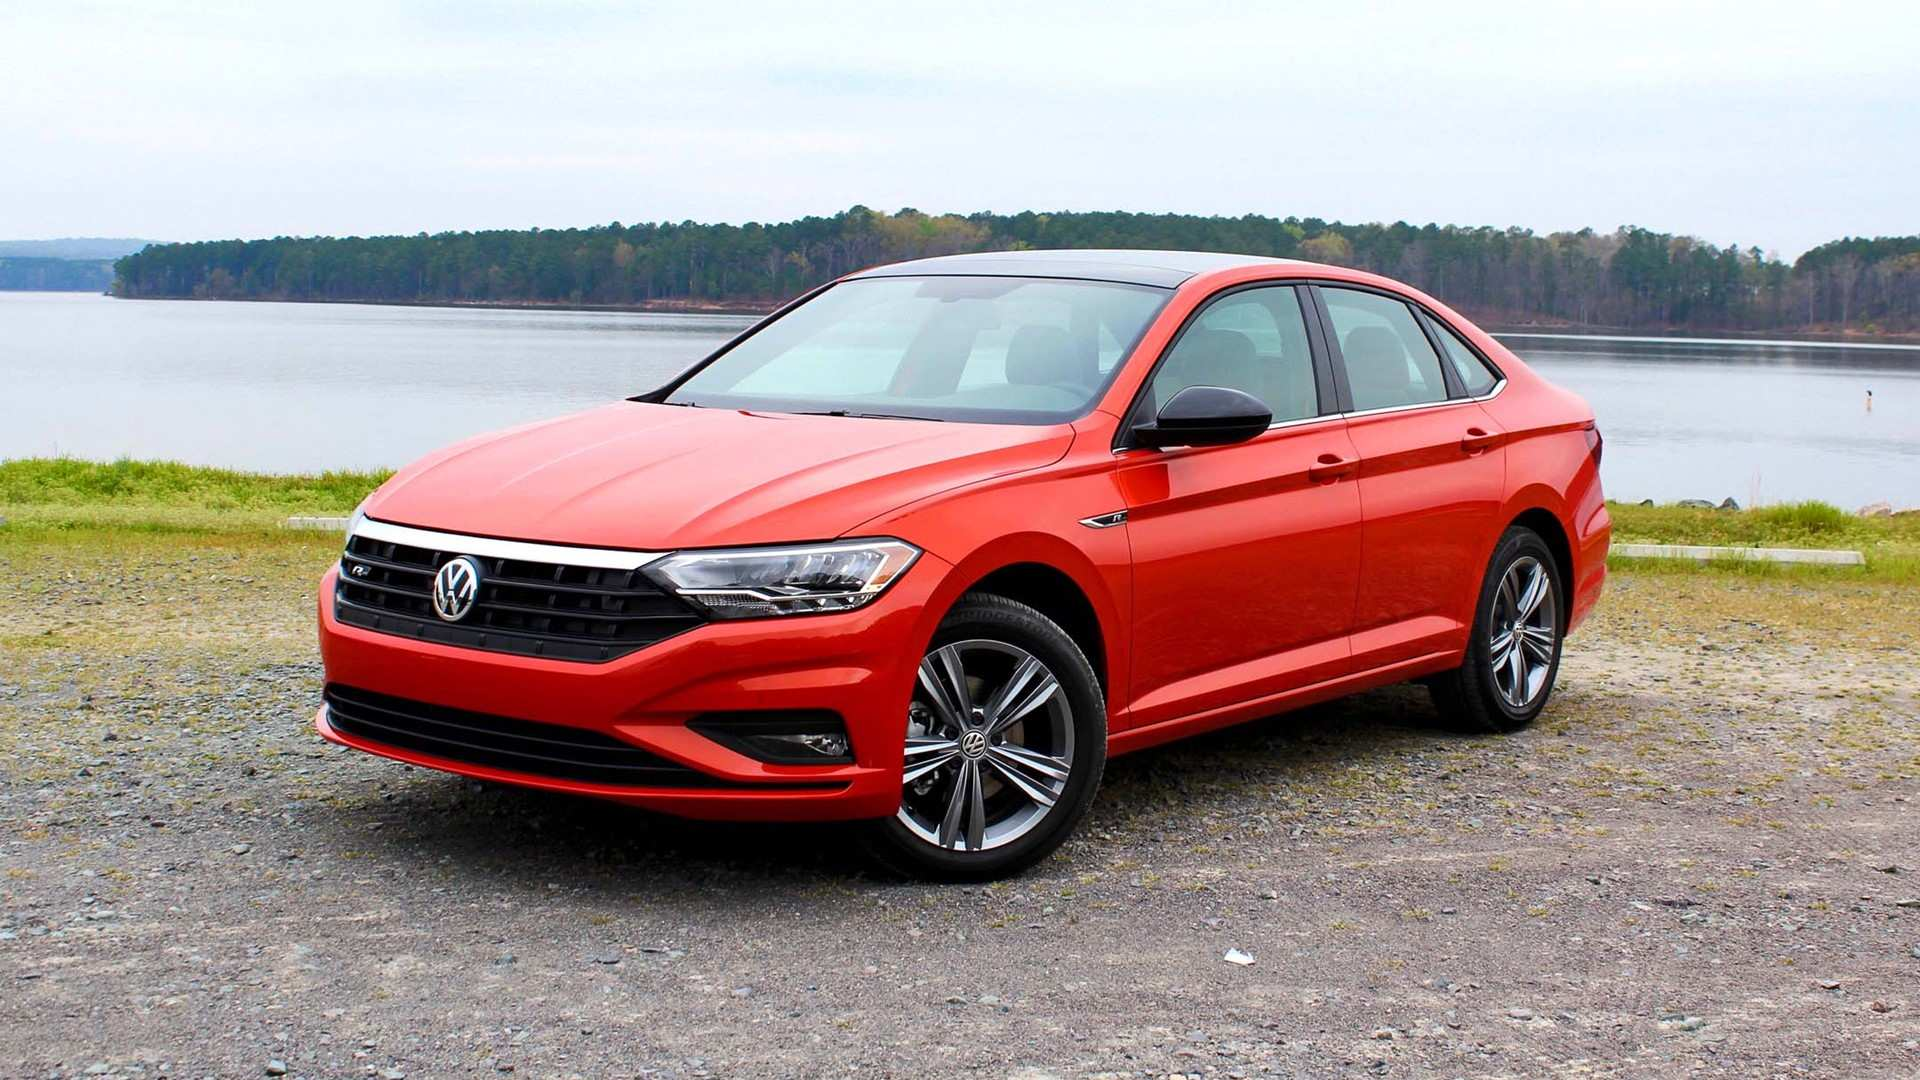 15 New Vw Jetta 2019 Canada Specs and Review with Vw Jetta 2019 Canada